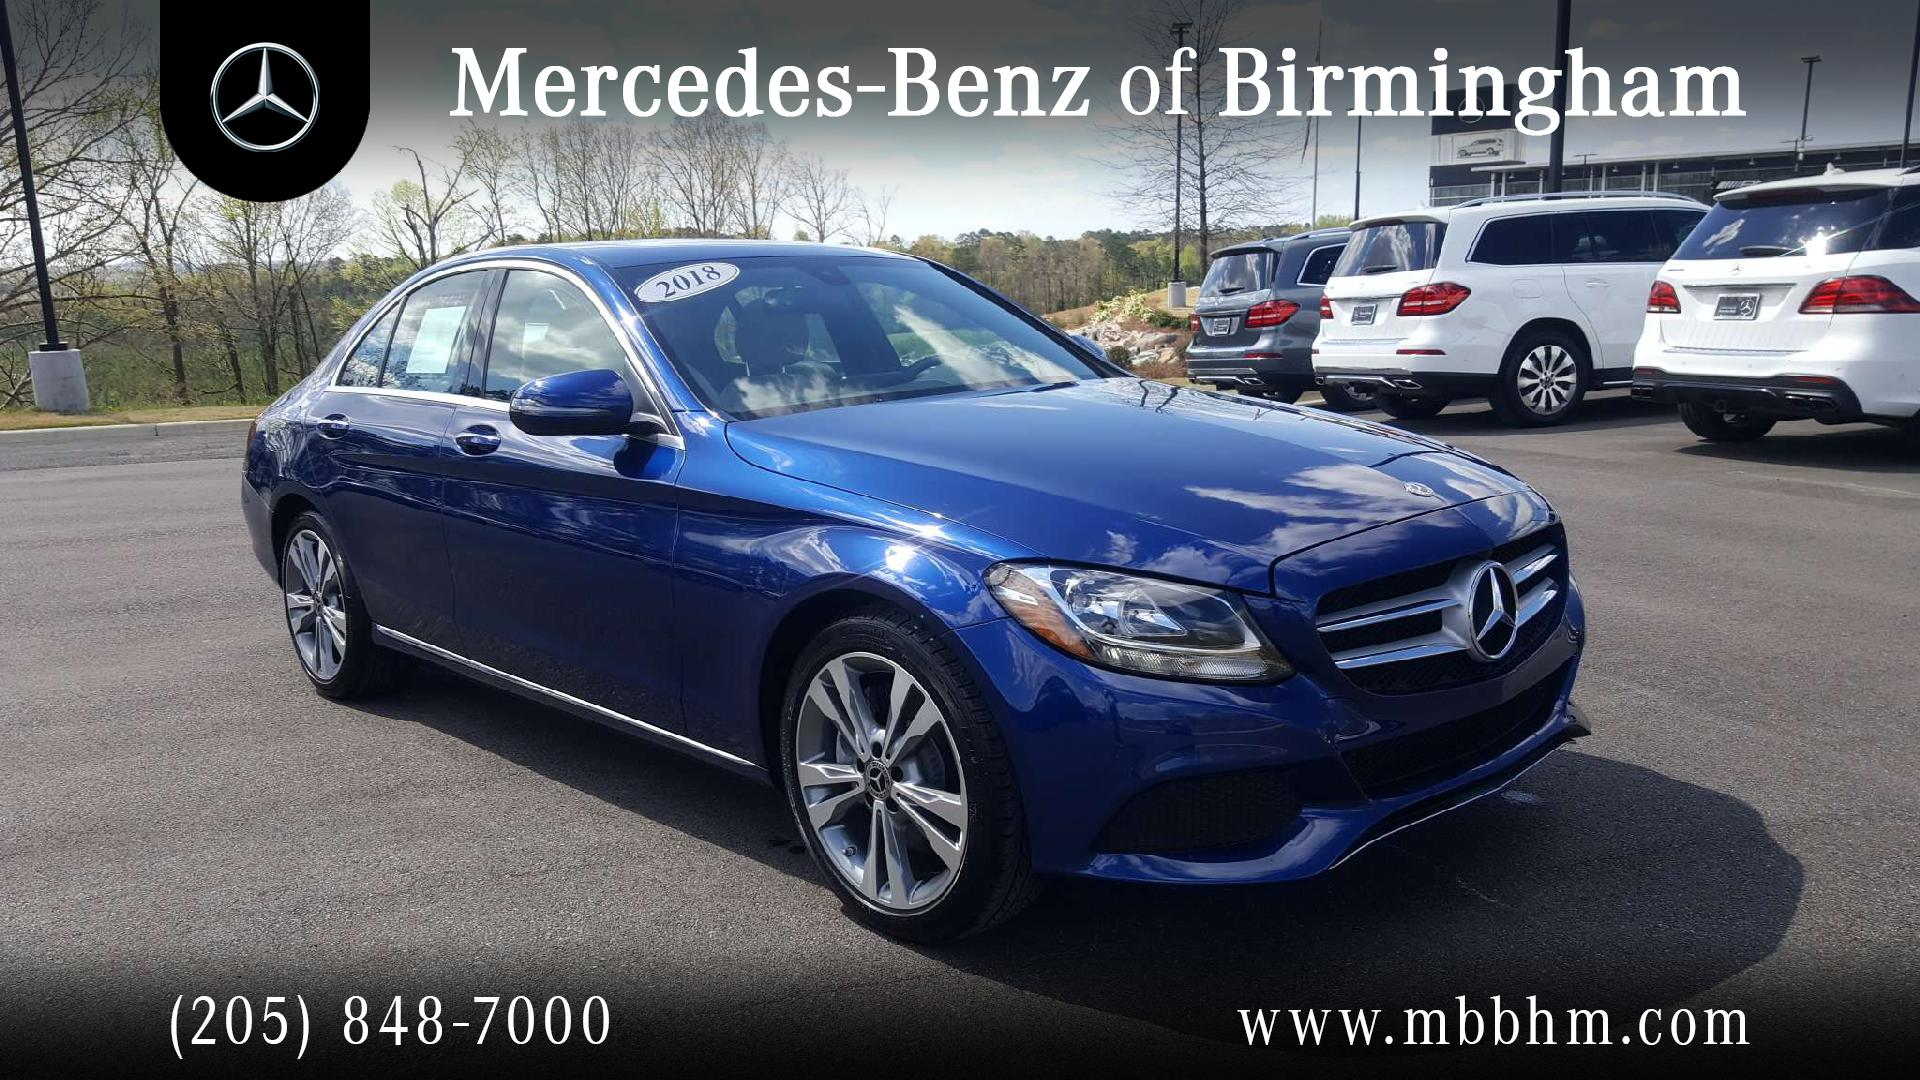 159 Pre-Owned Vehicles in Stock | Mercedes-Benz of Birmingham